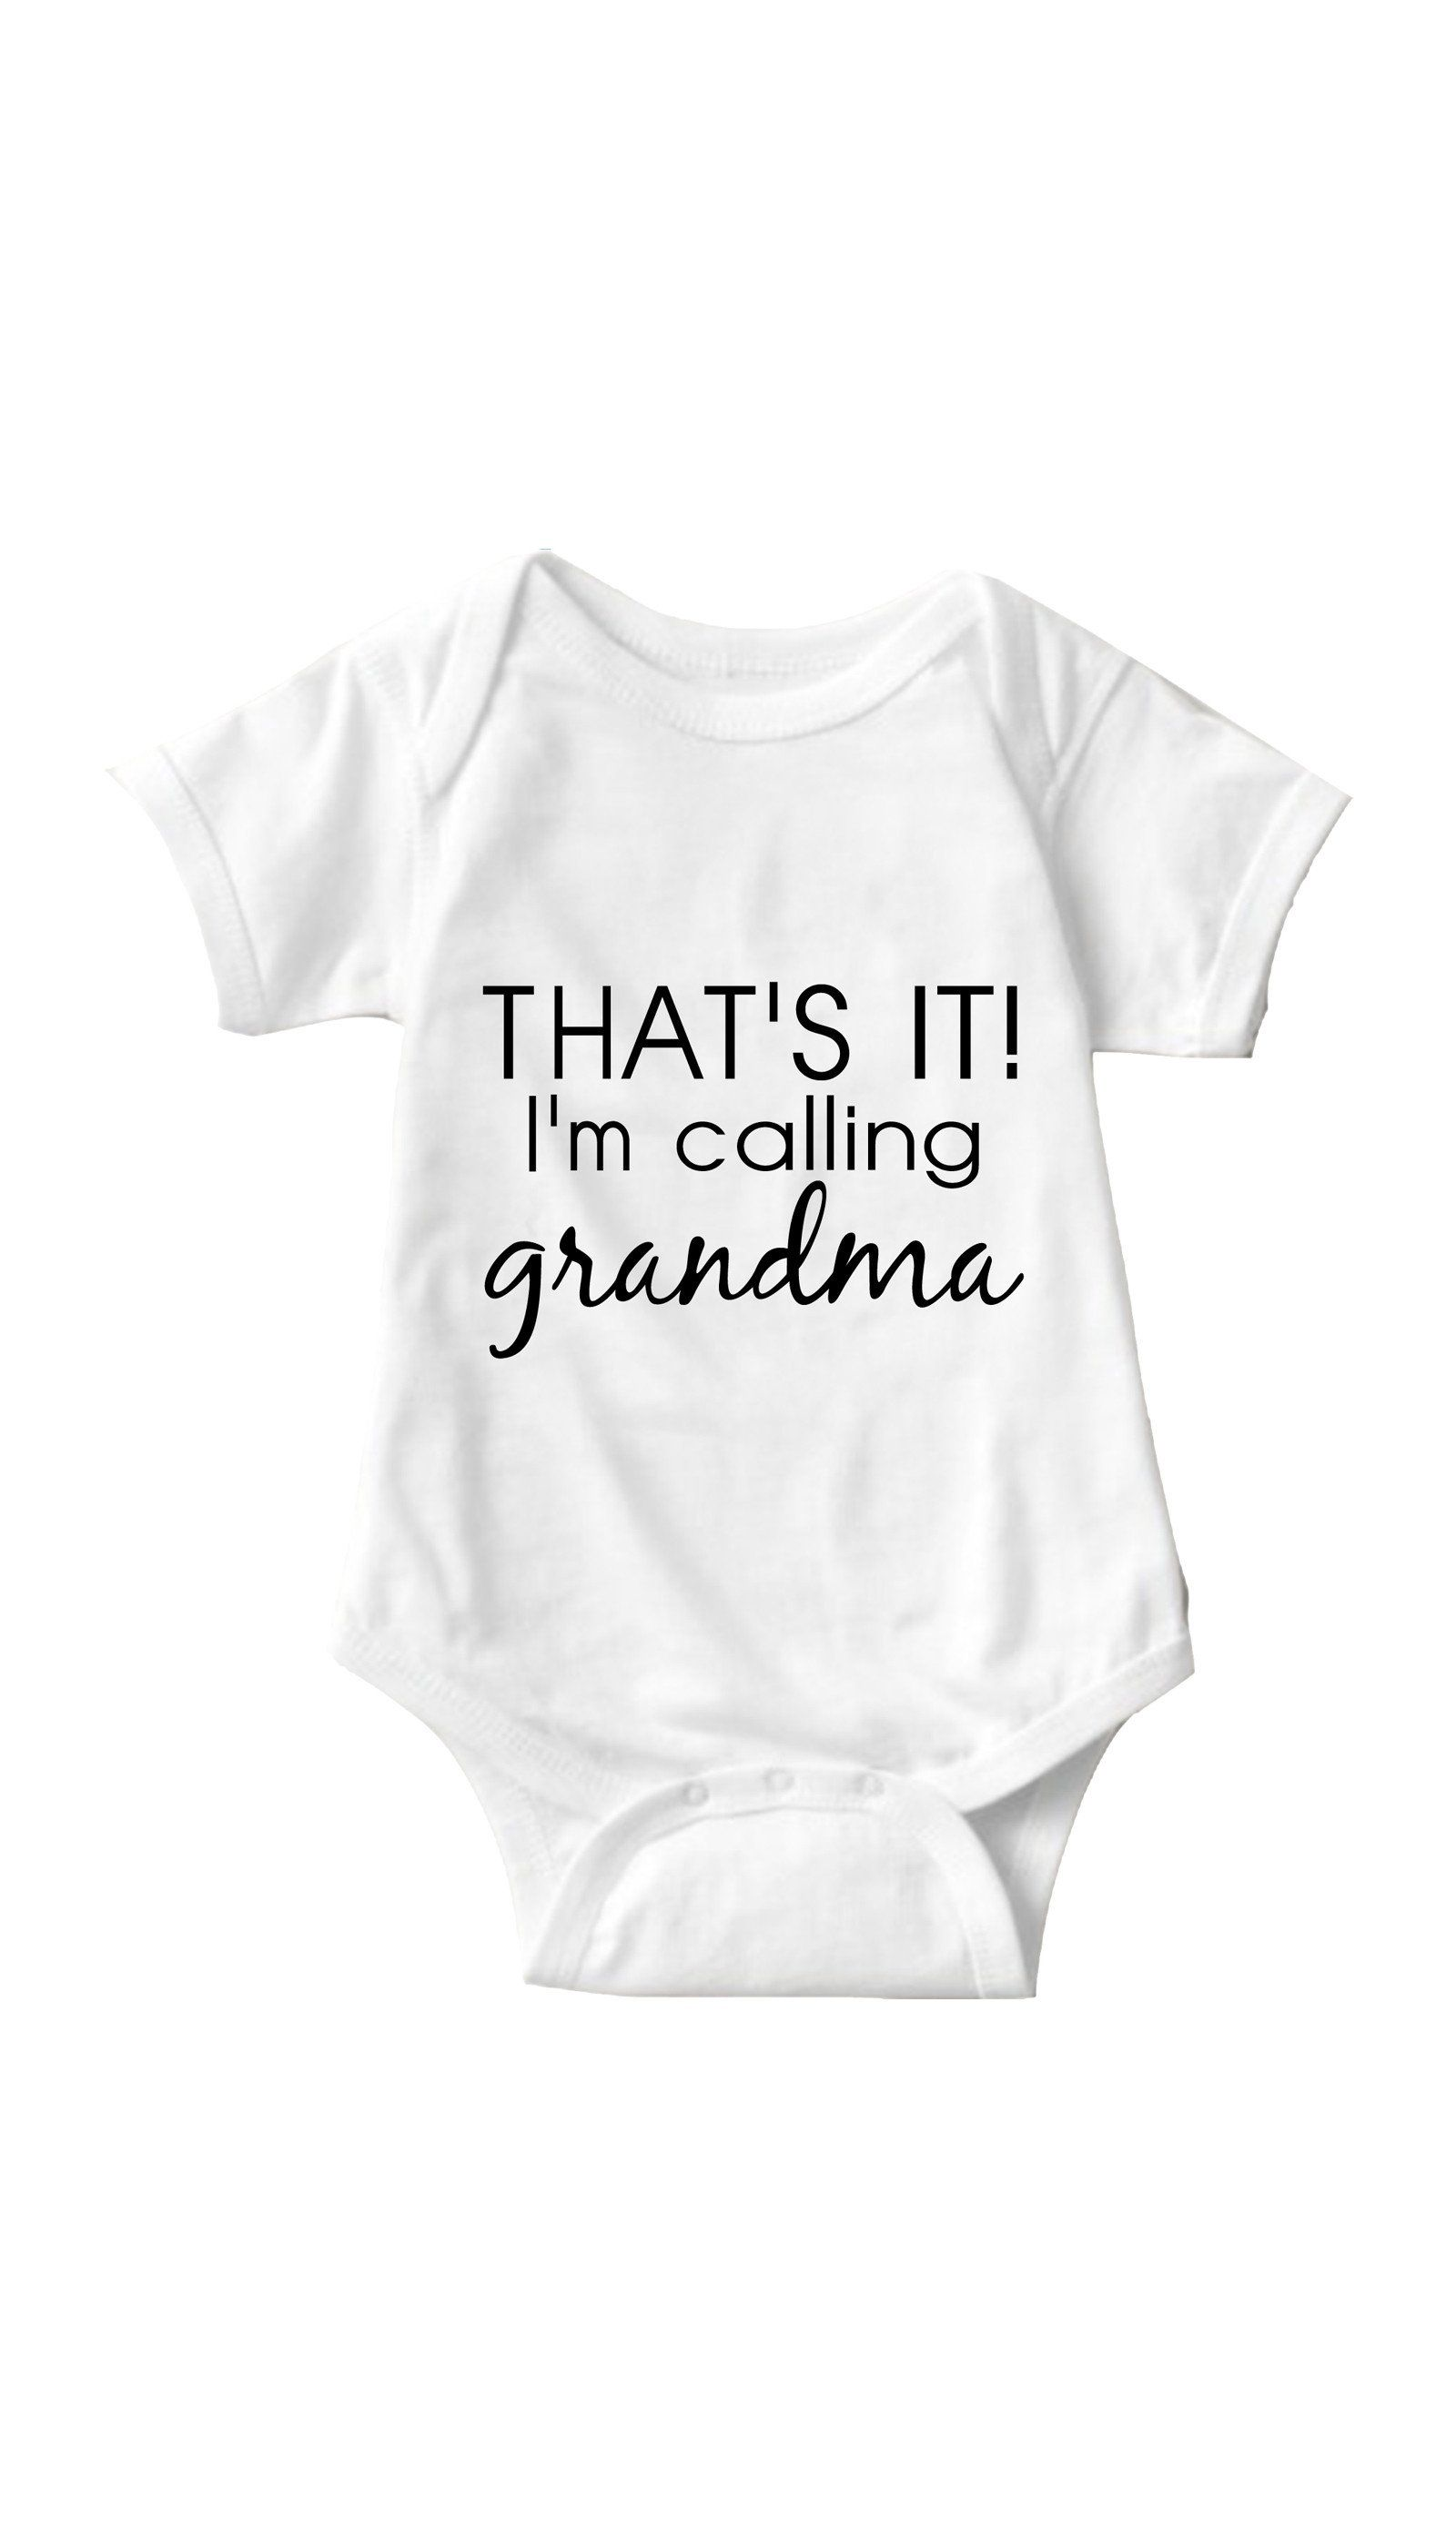 Grandmother Dress For Baby Shower : grandmother, dress, shower, That's, Calling, Grandma, Infant, Onesie, Funny, Clothes,, Onesies